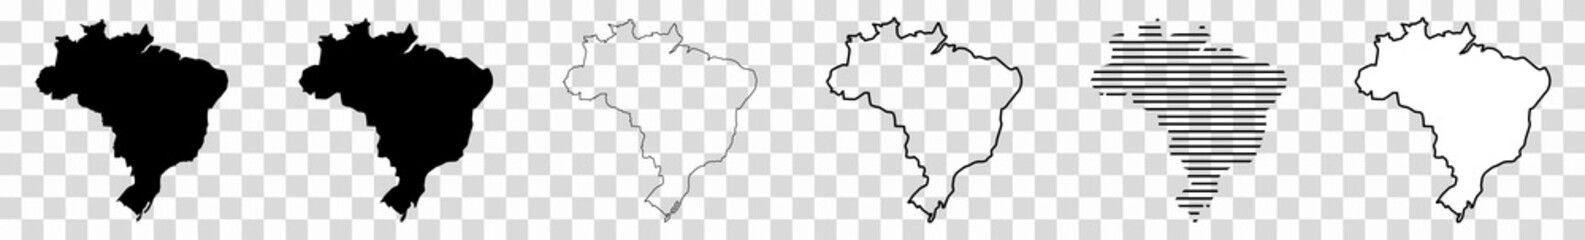 Brazil Map Black | Brazilian Border | State Country | Transparent Isolated | Variations Fotomurales